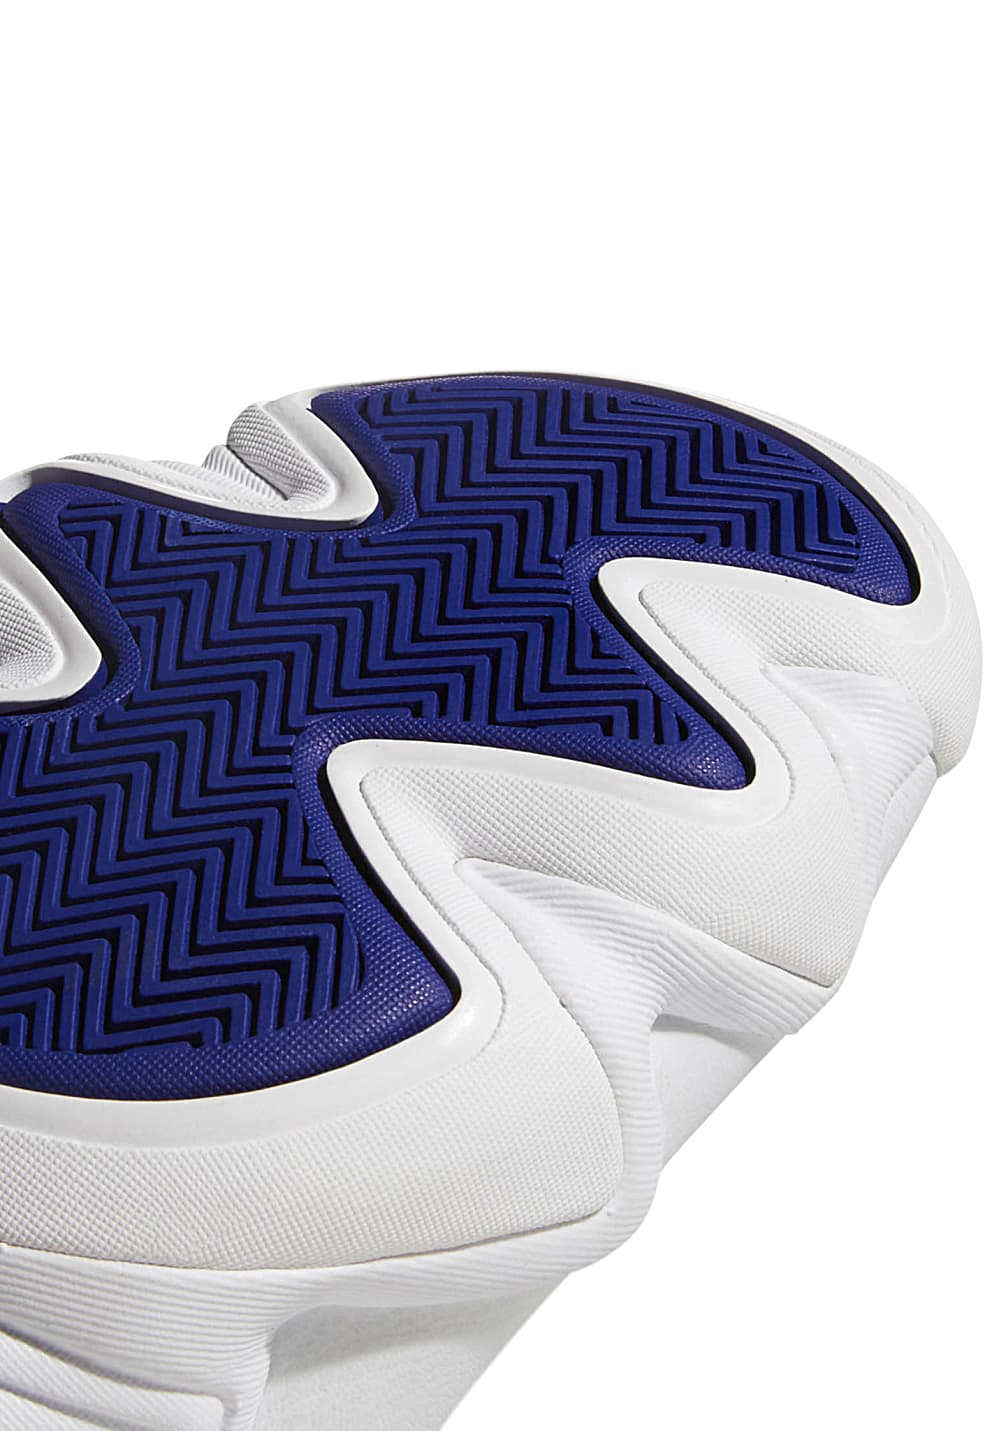 huge discount 6a7bb b3936 Next. This product is currently out of stock. ADIDAS ORIGINALS. Crazy 8 Adv  (Asw) - Sneakers for Men